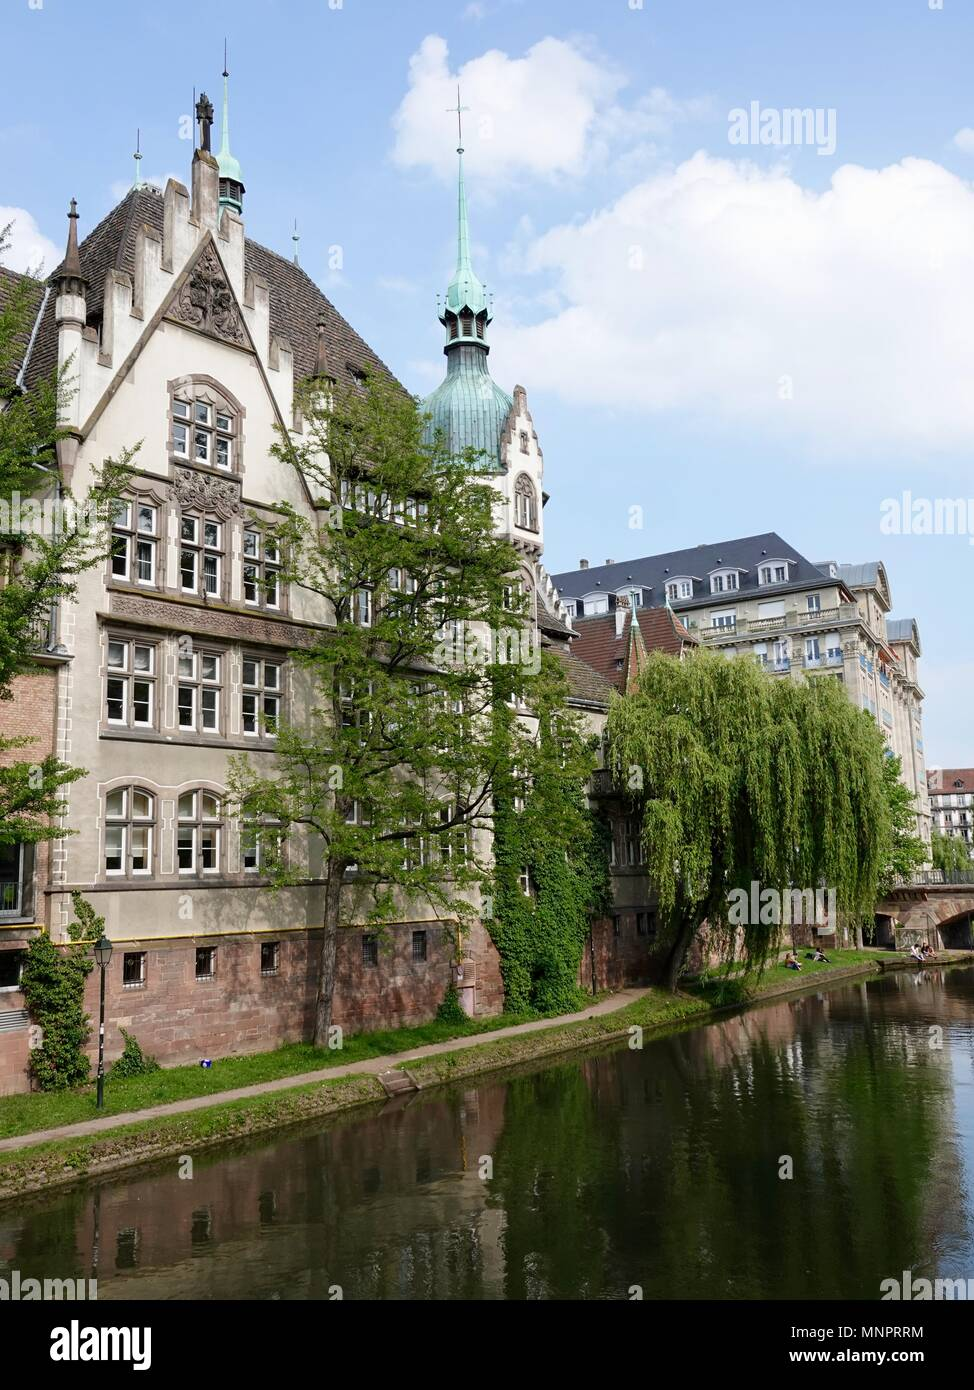 Architecturally interesting structures along the River Ill canal, Strasbourg, France - Stock Image